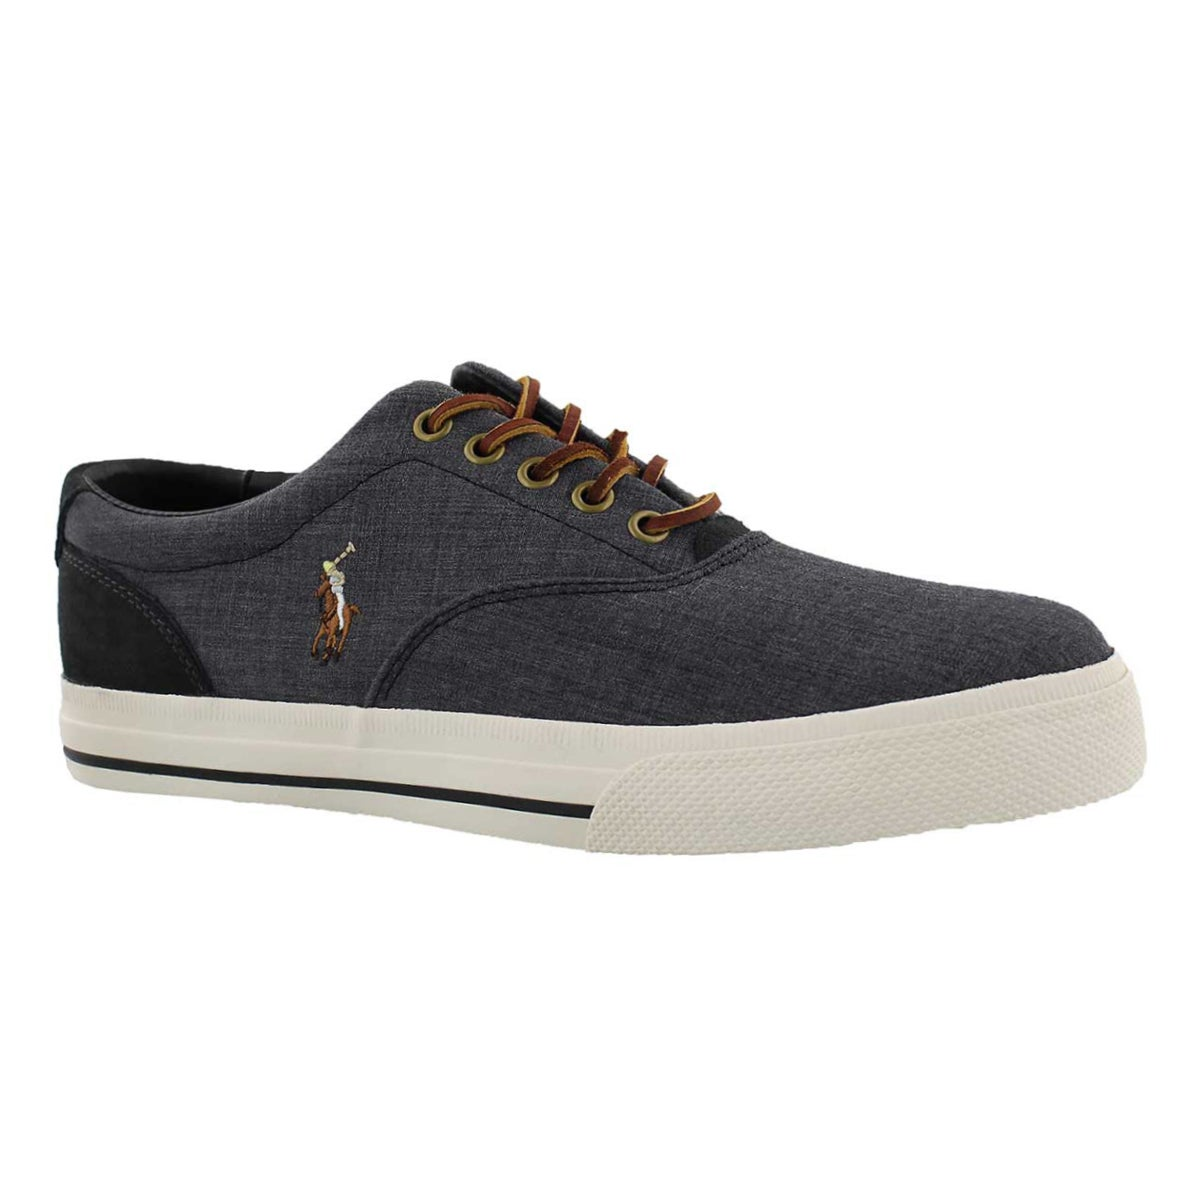 Mns Vaughn blk/carbon gry canvas sneaker